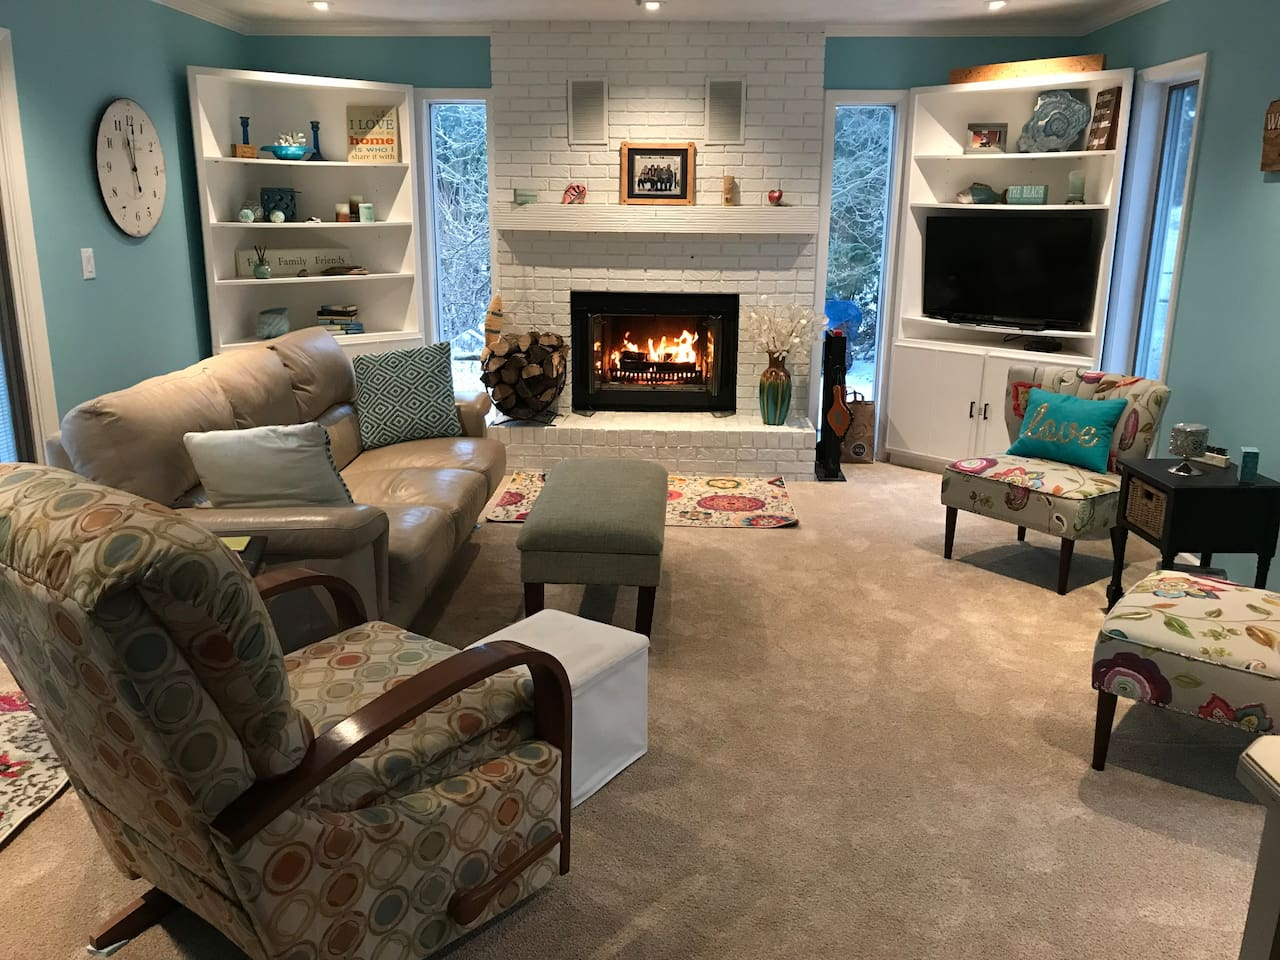 Can't you just picture yourself relaxing here? This cozy living room is shared by all guests and includes cable TV, fireplace and easy access to the deck/yard for the warmer months.